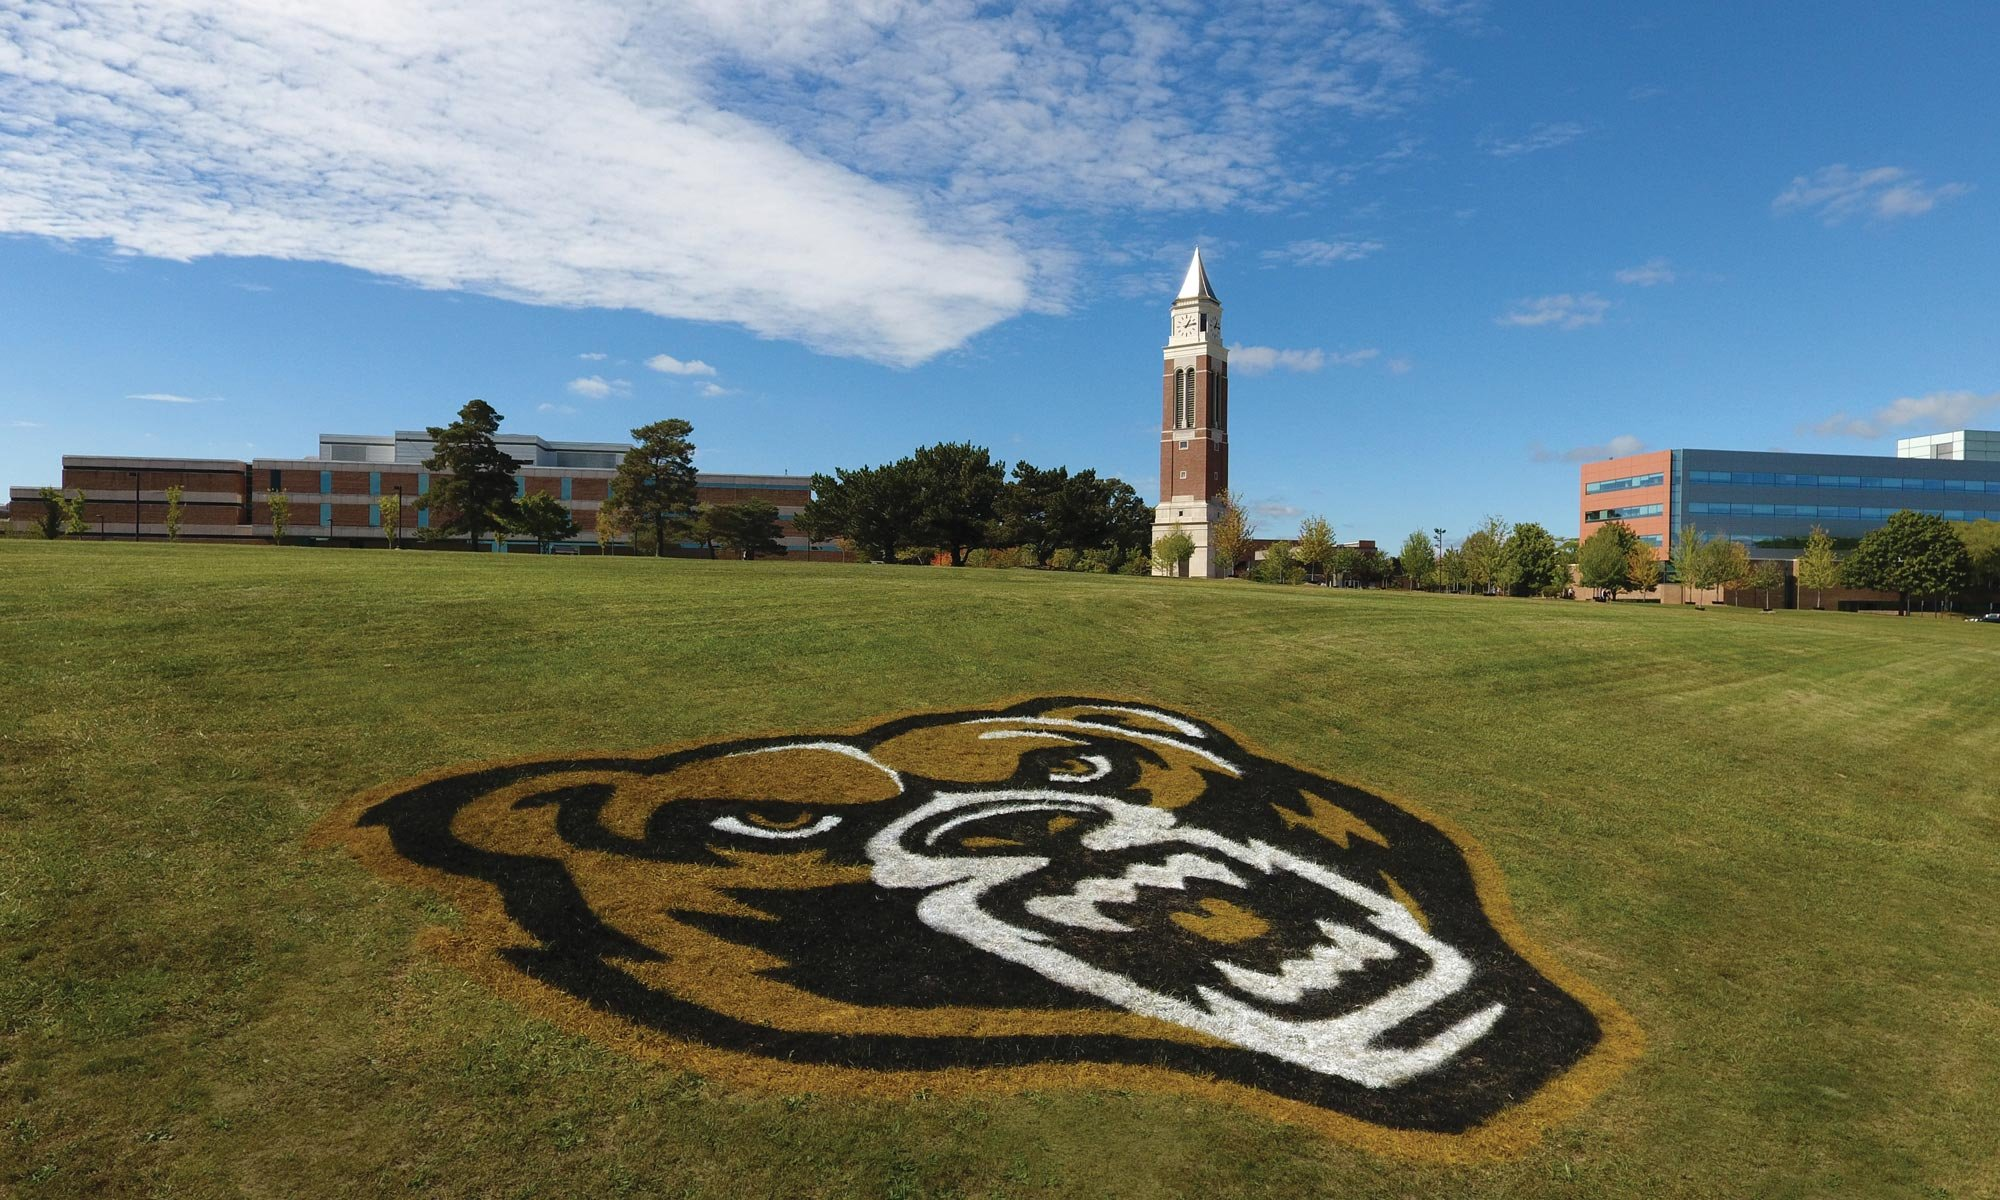 Oakland University's logo painted into the grass on a hill with Elliott Tower seen in the background